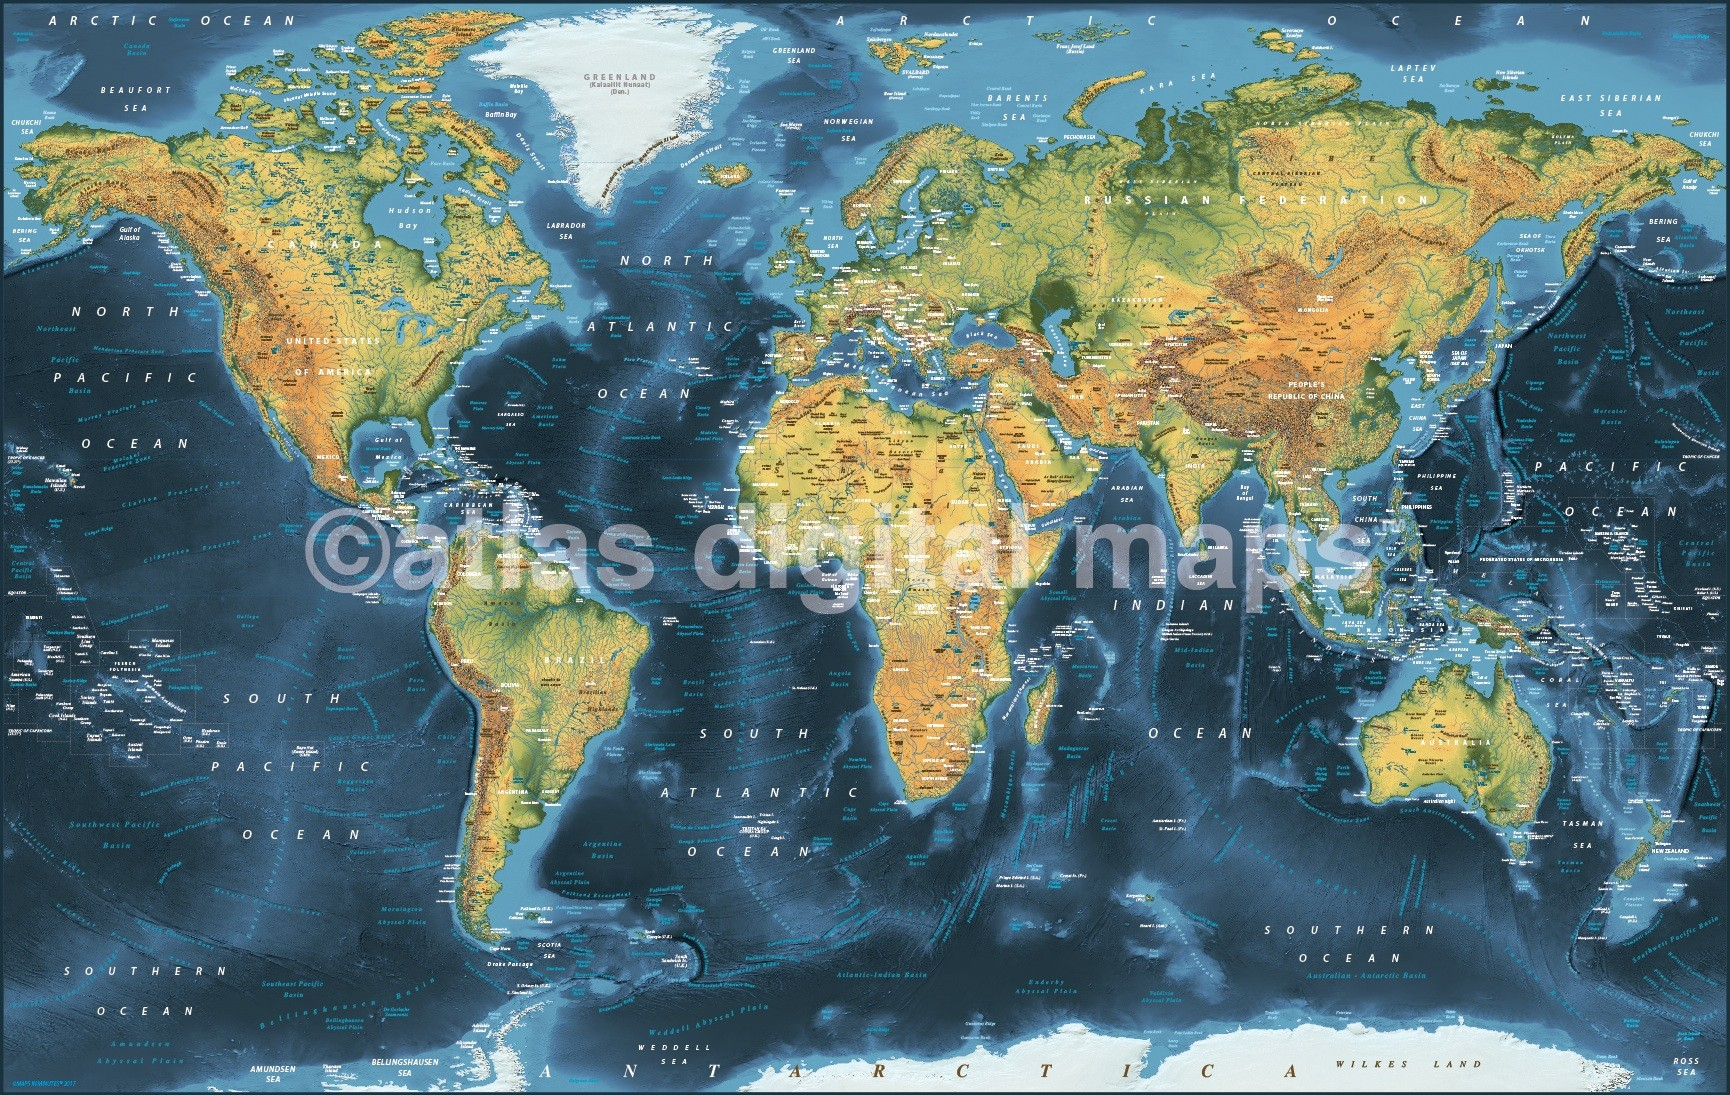 Dark style contemporary canvas world wall map 72 x 38 canvas world wall map dark style contemporary 60 inches wide x 38 inches deep gumiabroncs Choice Image